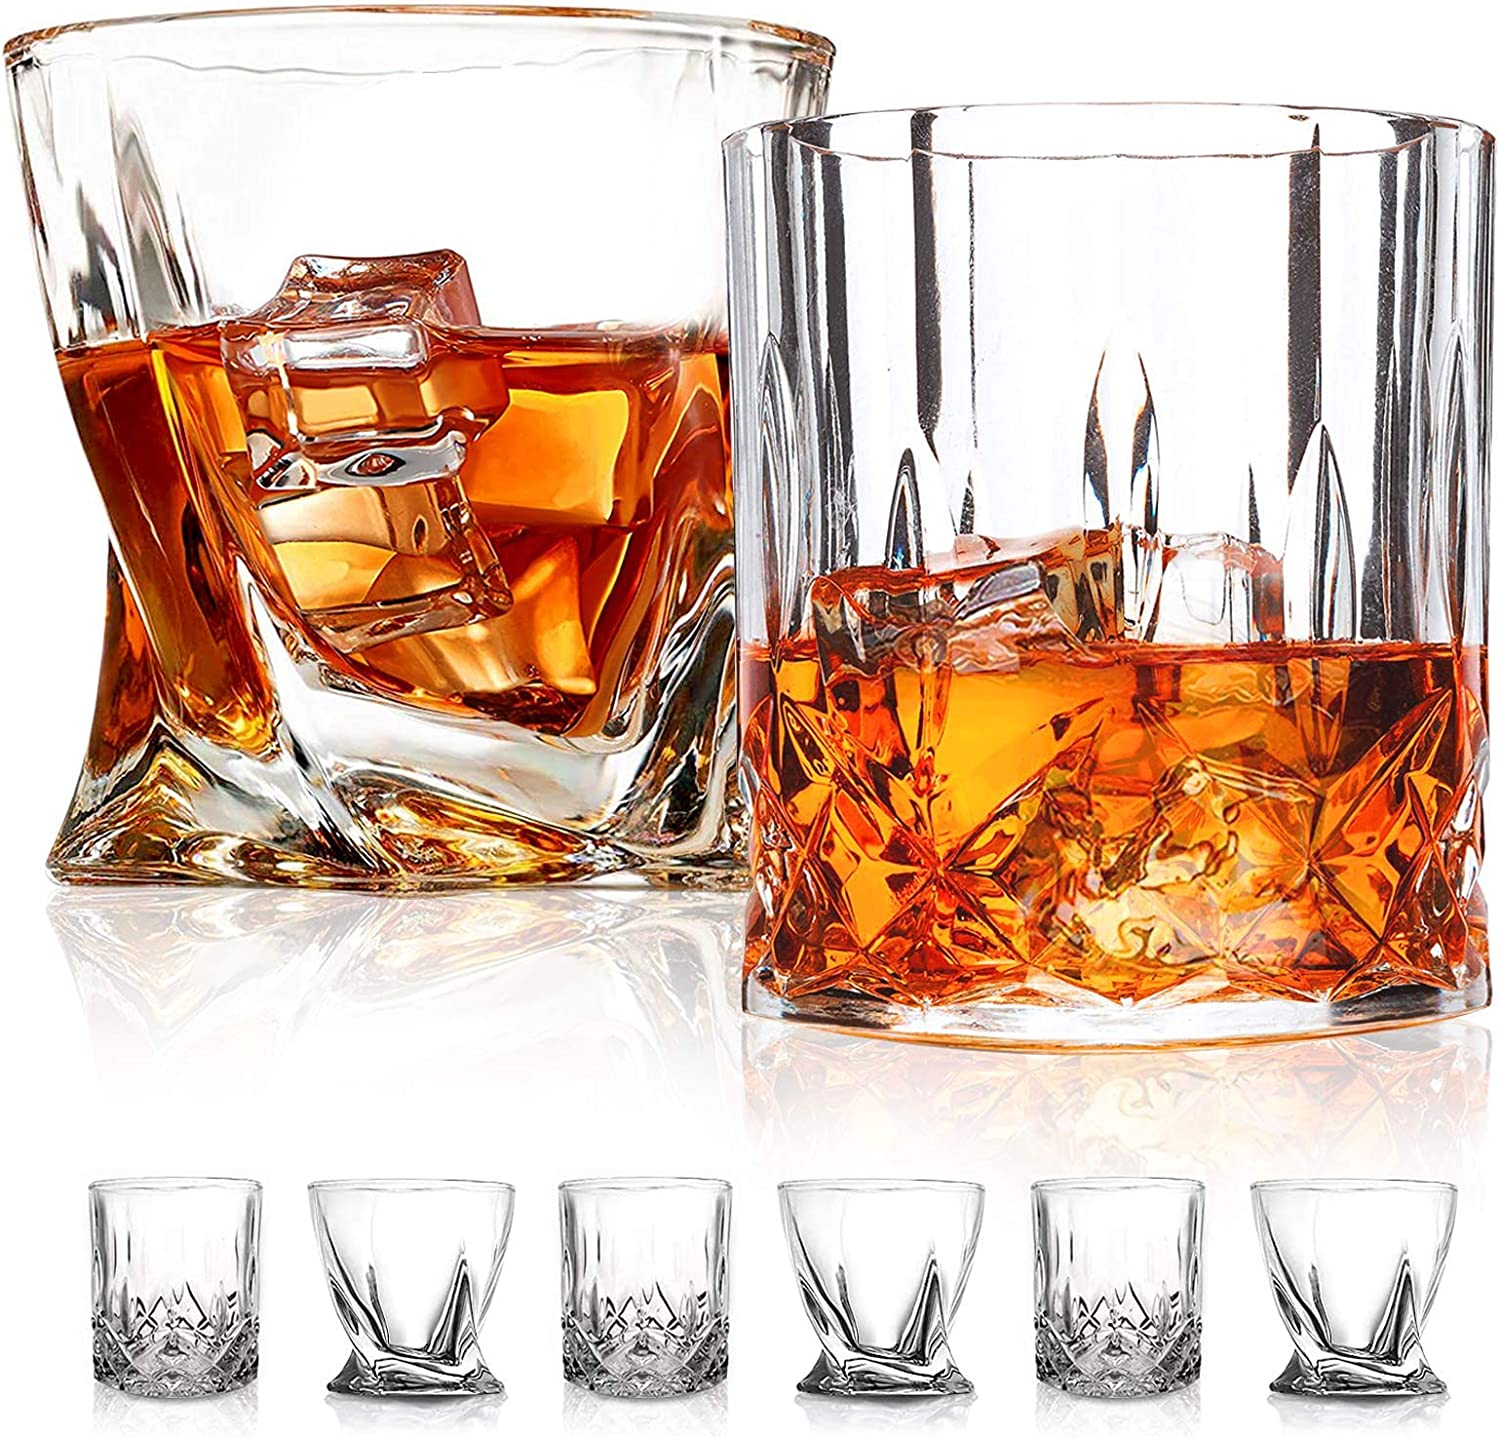 Old Fashioned Crystal Max 89% OFF Whiskey Glasses 6 Manufacturer direct delivery Set 1 of Rocks